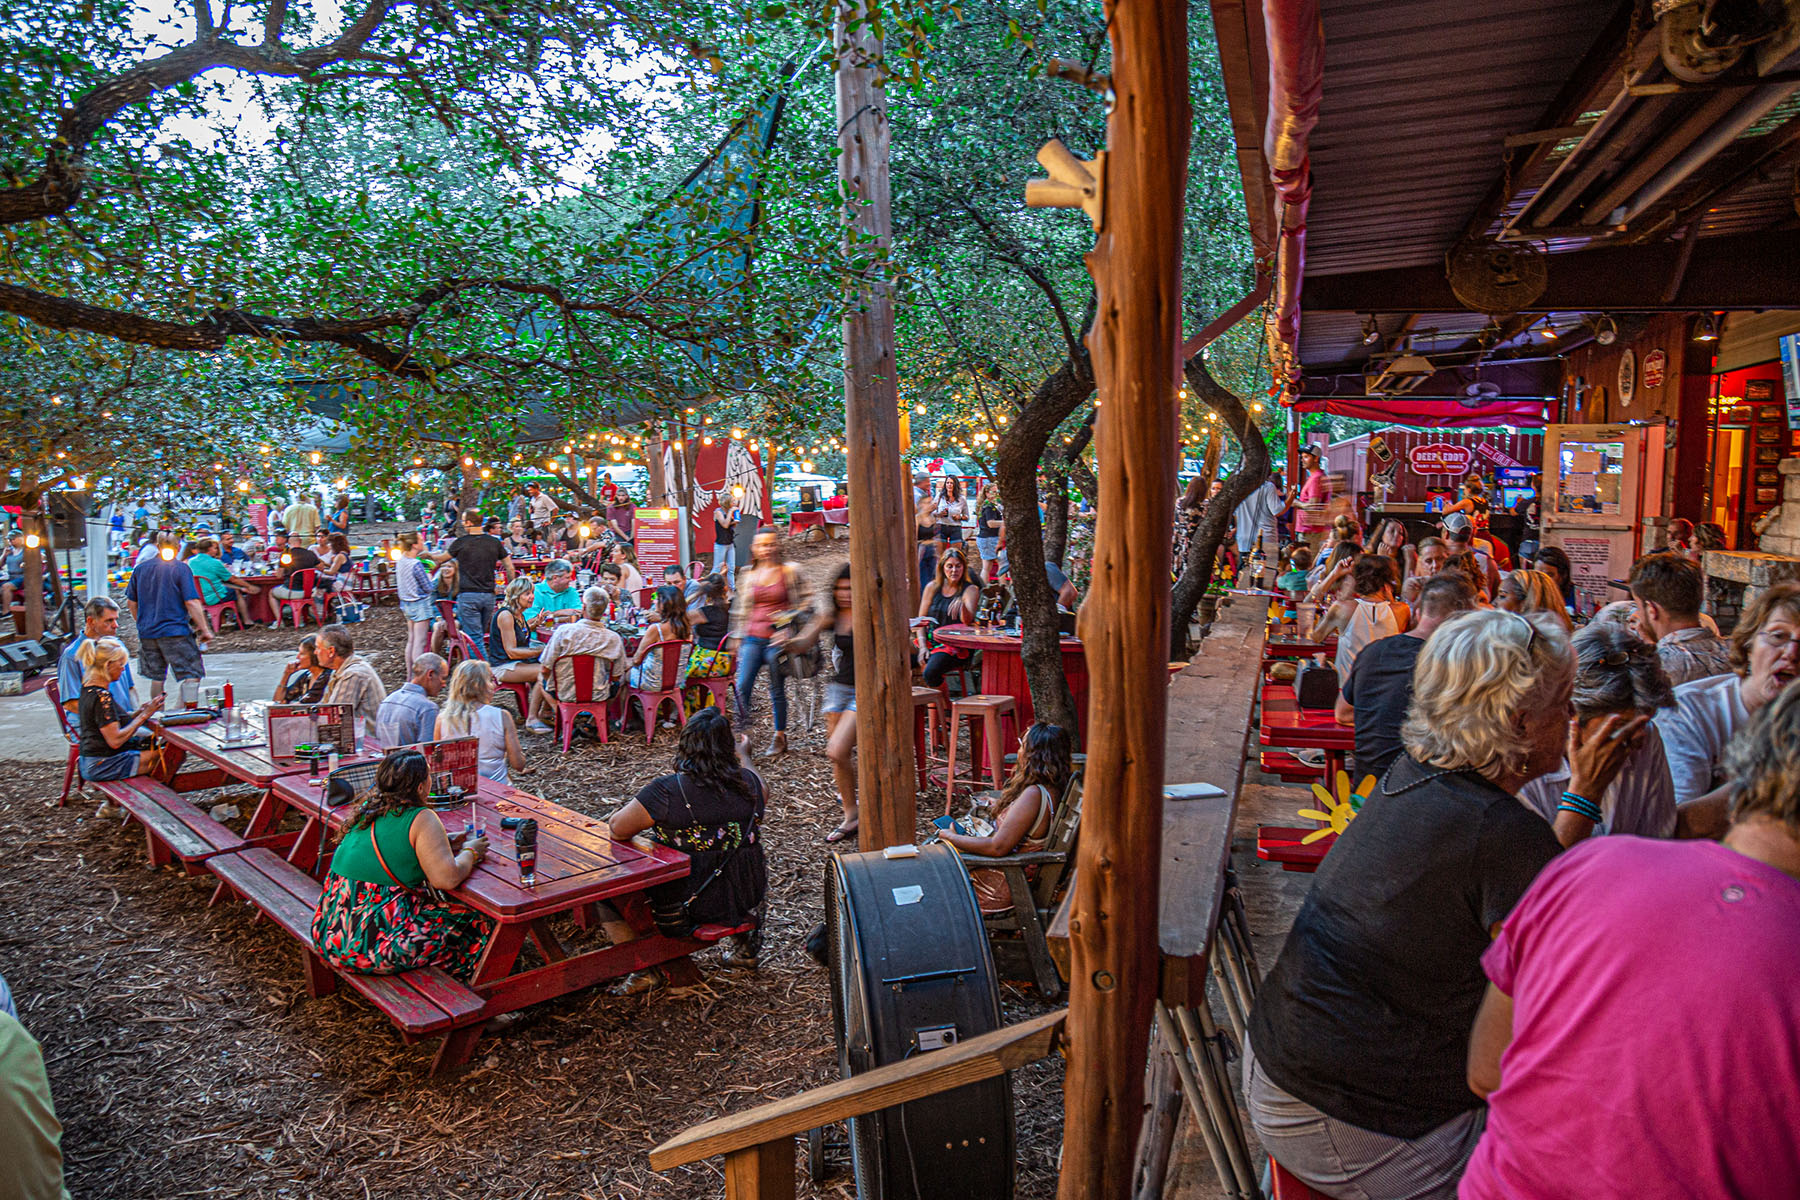 Out on the patio at Angel's Icehouse in Spicewood, TX. Photo: Will Taylor - LostinAustin.org